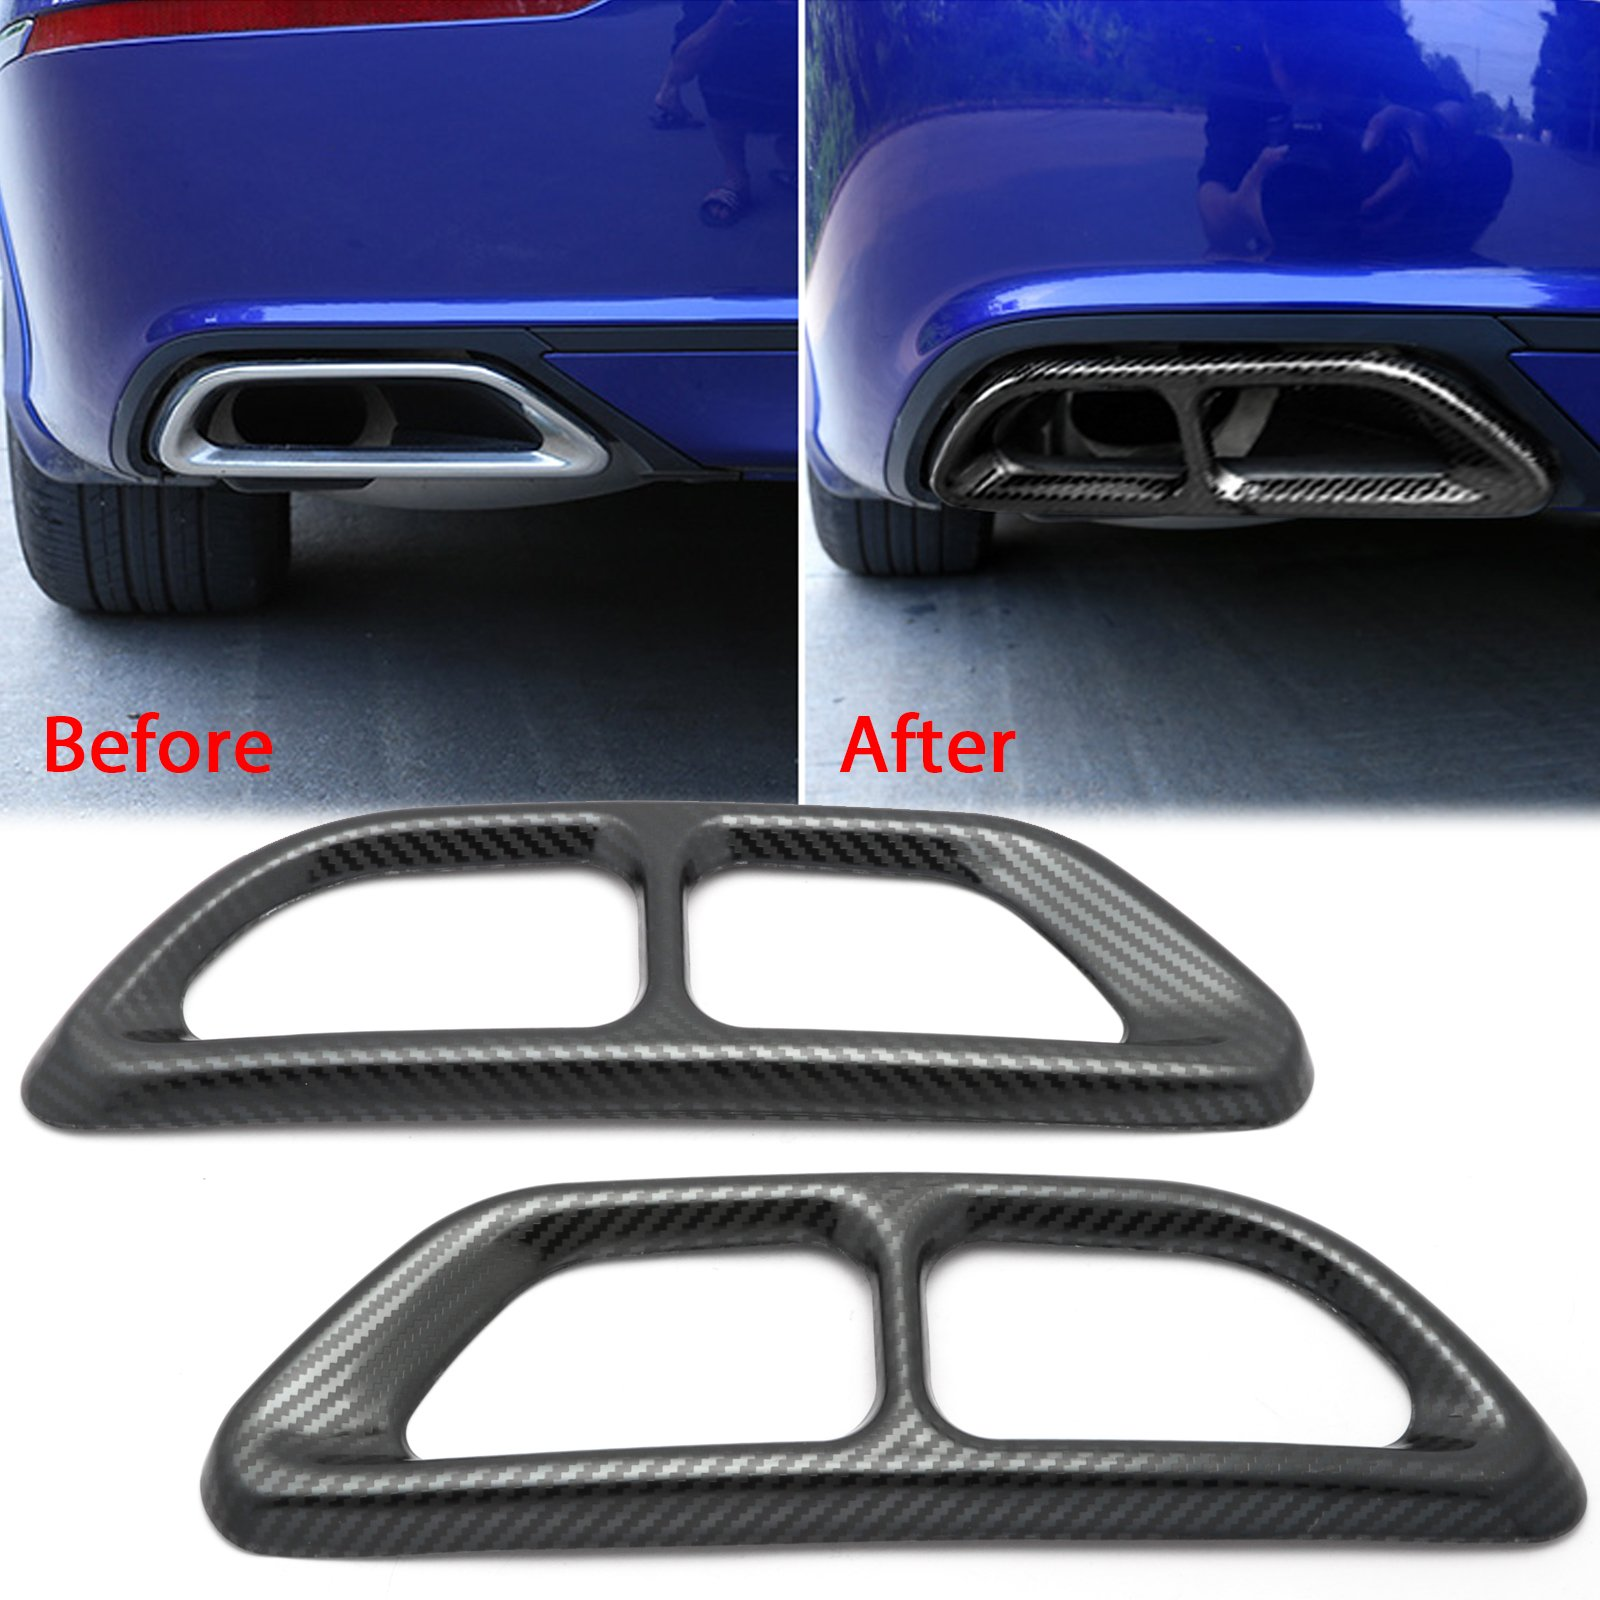 xotic tech carbon fiber texture rear cylinder exhaust pipe cover molding overlay trims for honda accord 10th gen 2018 2019 2020 walmart com